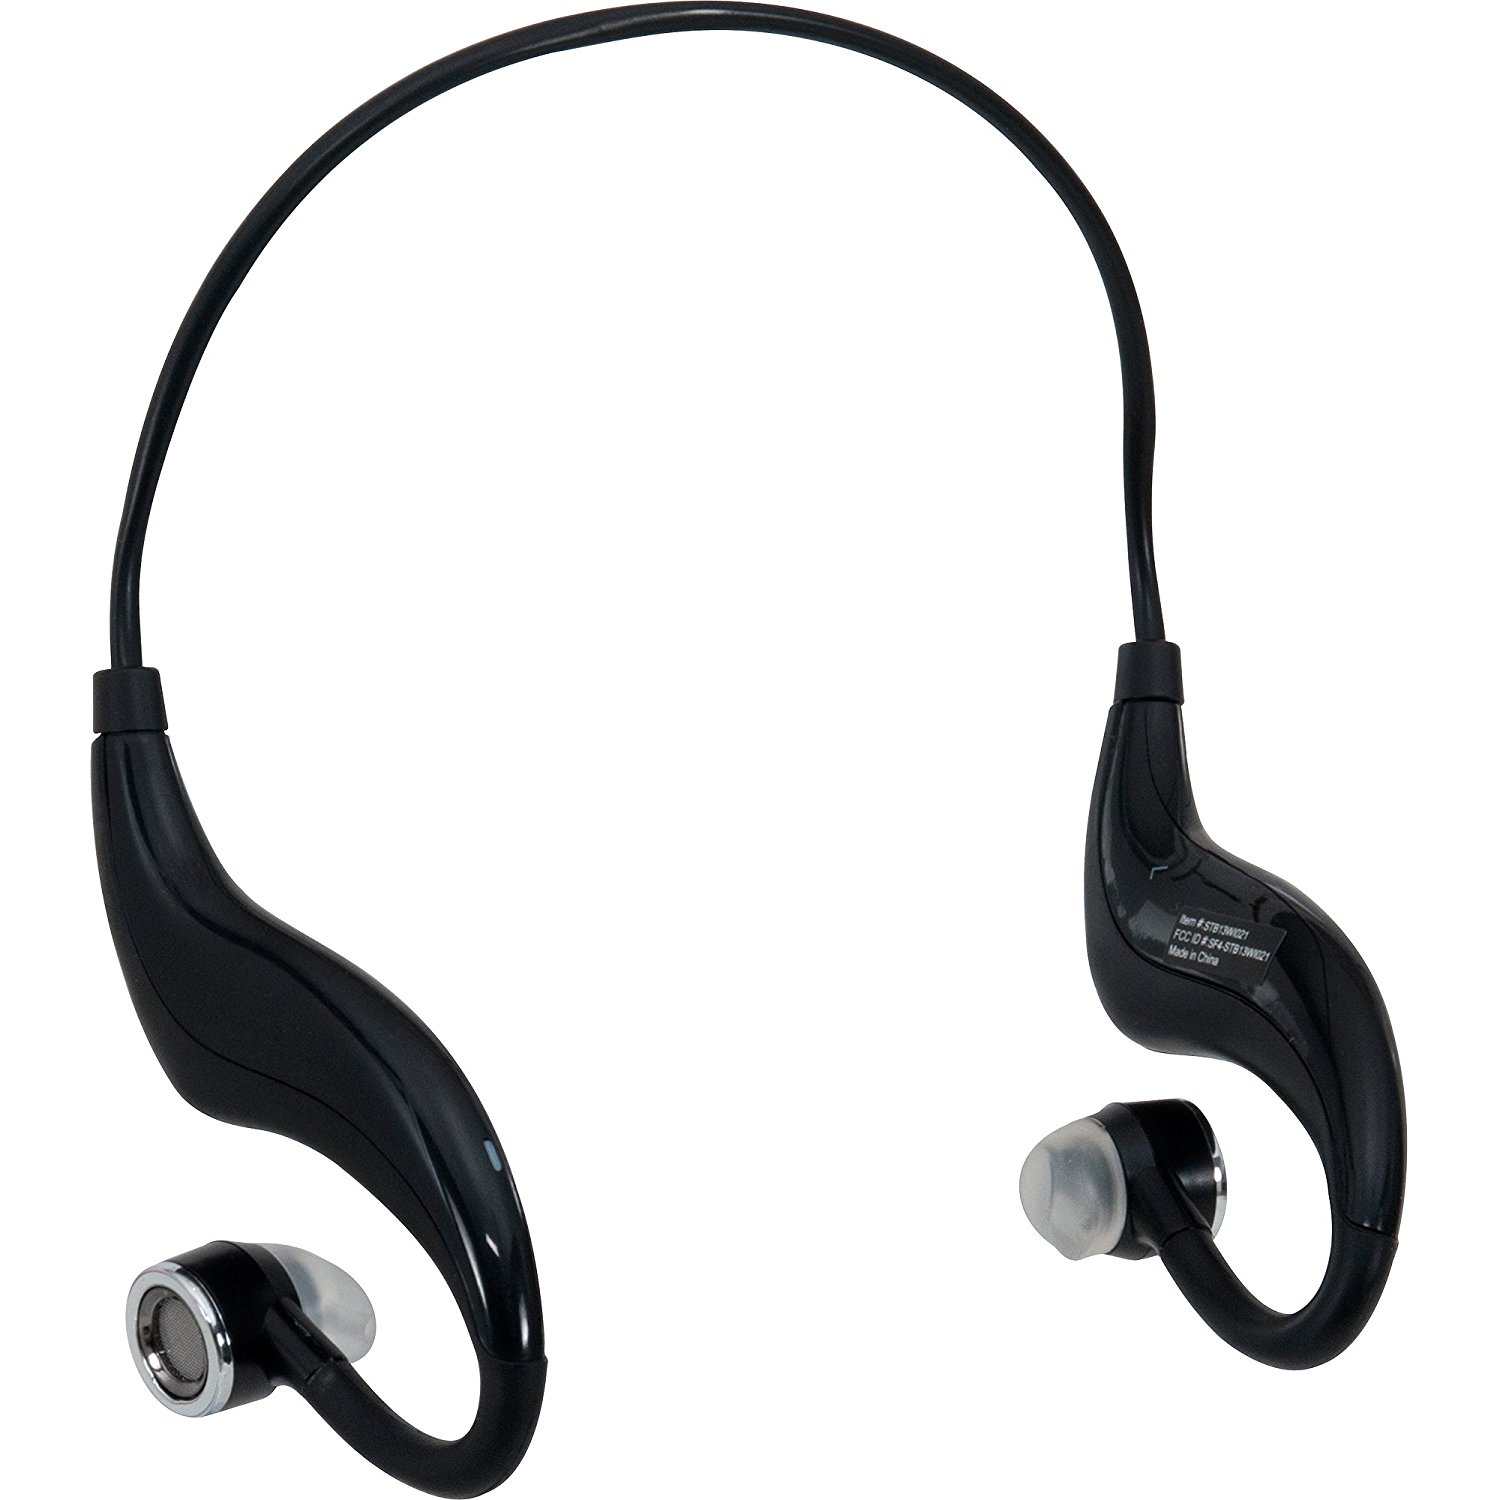 Straight Talk Stereo Bluetooth Wireless Headphones with Wrap-Around Ear Hooks and Flexible Design, Black (New Open Box)